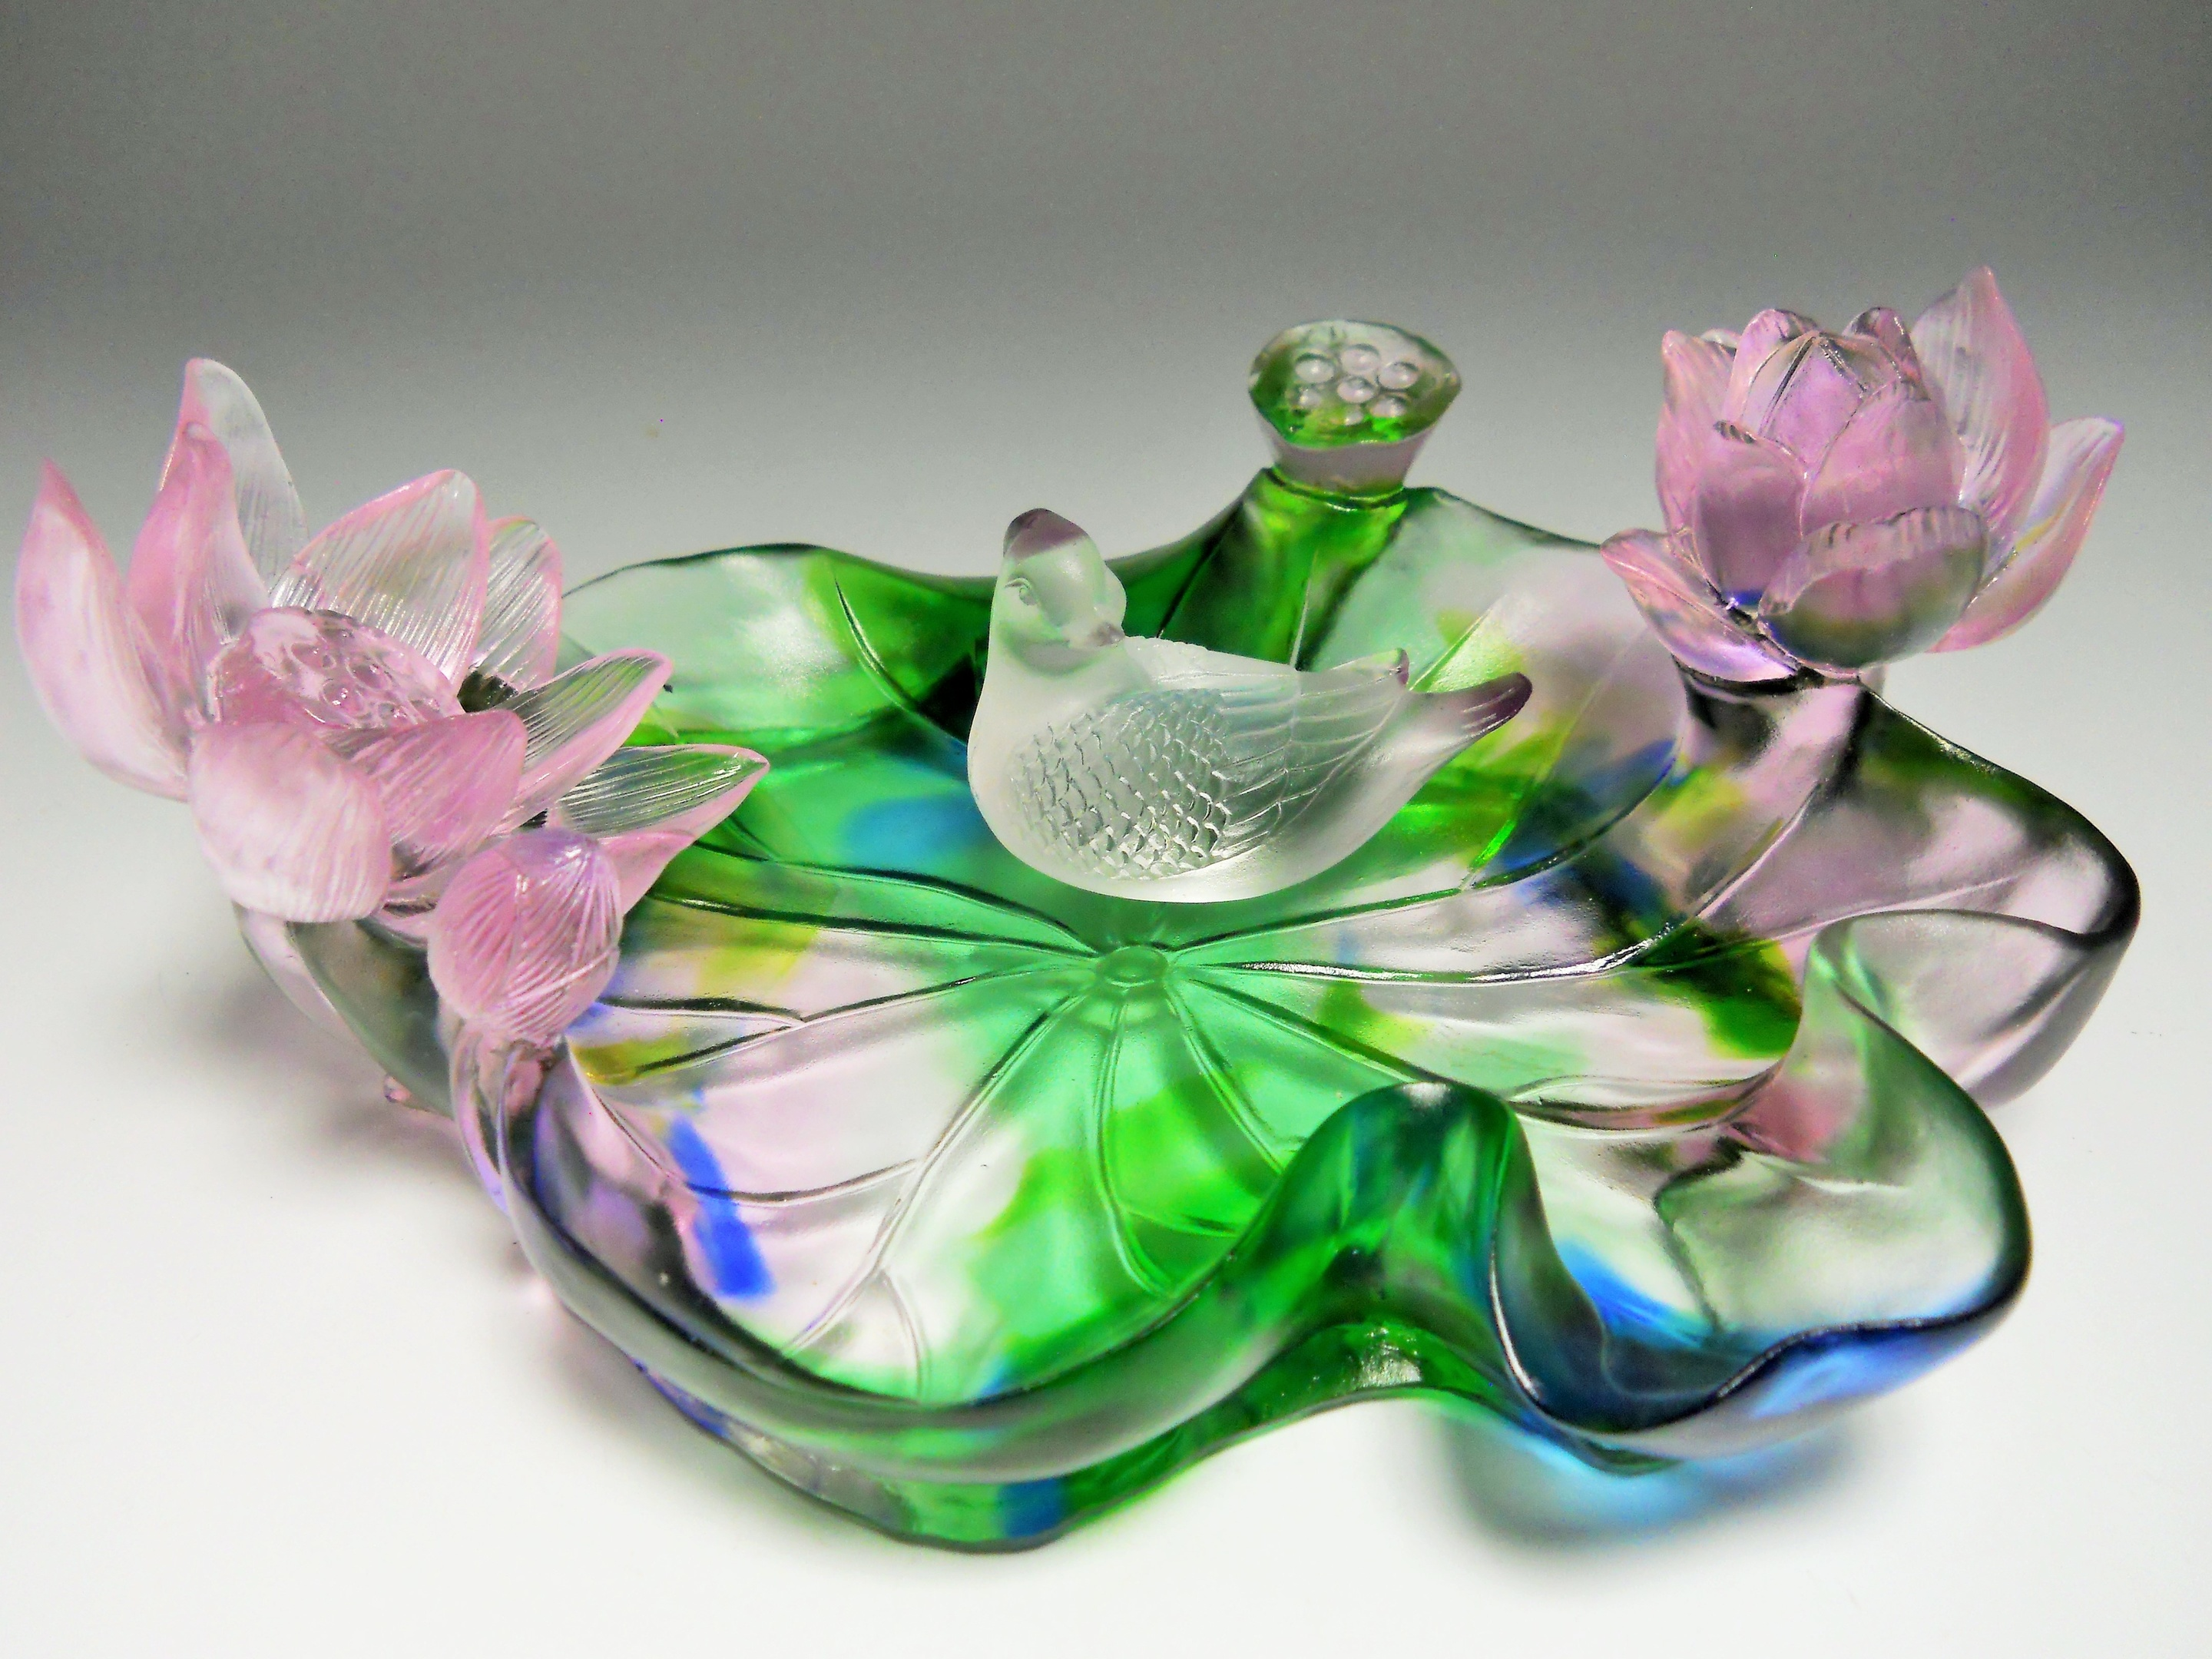 Chinese art glass sculpture lotus flowers circa 21 century chinese art glass sculpture lotus flowers circa 21 century collectors weekly izmirmasajfo